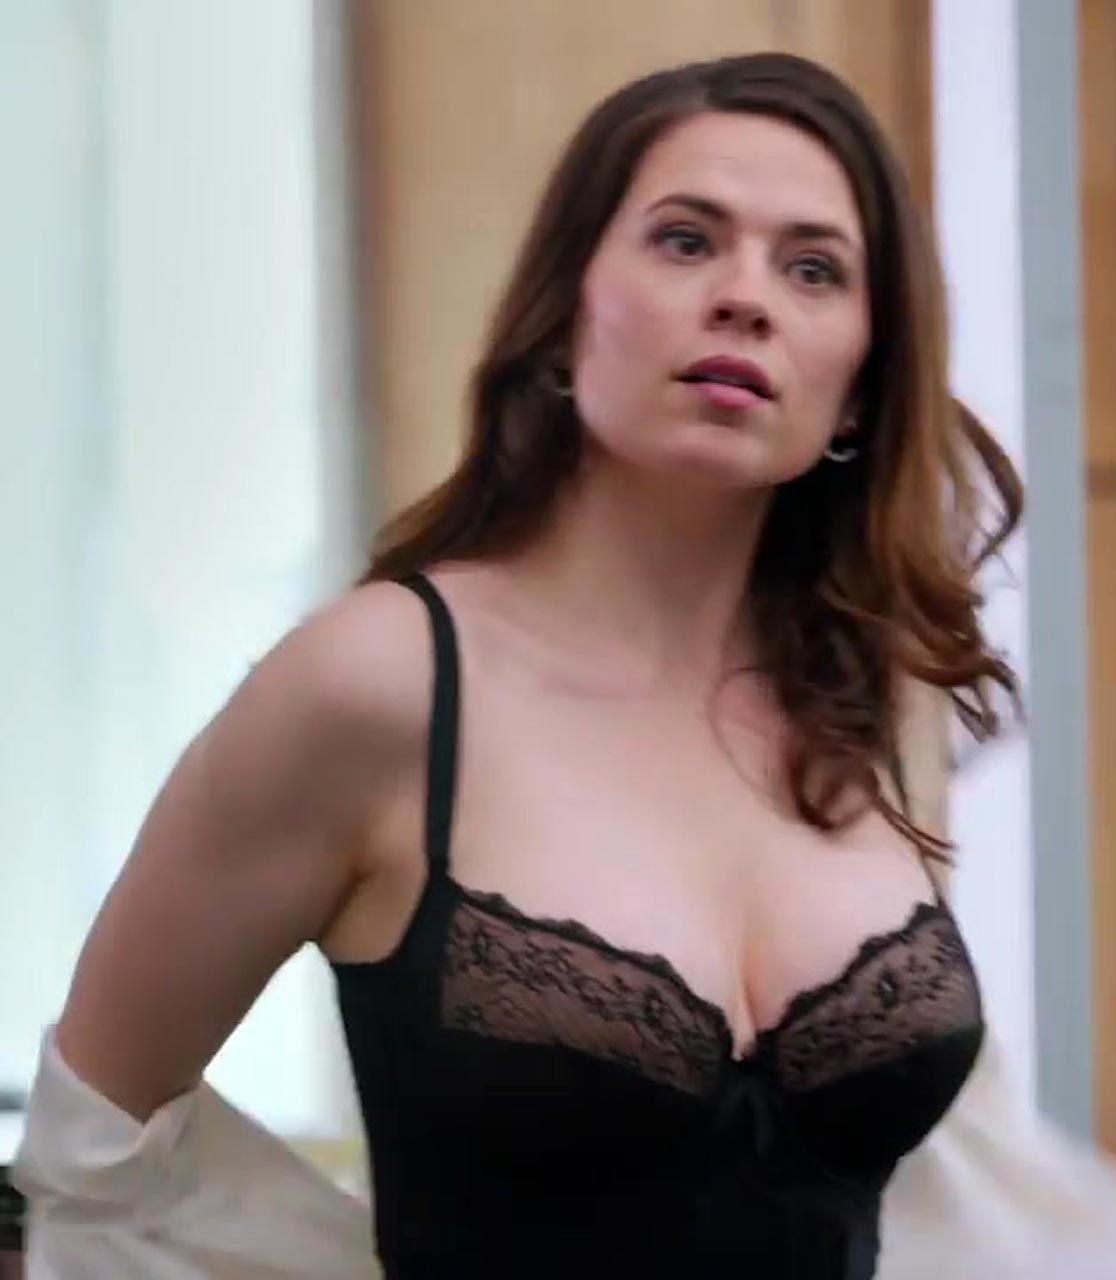 Porn Hayley Atwell nude (93 foto and video), Sexy, Hot, Twitter, lingerie 2020